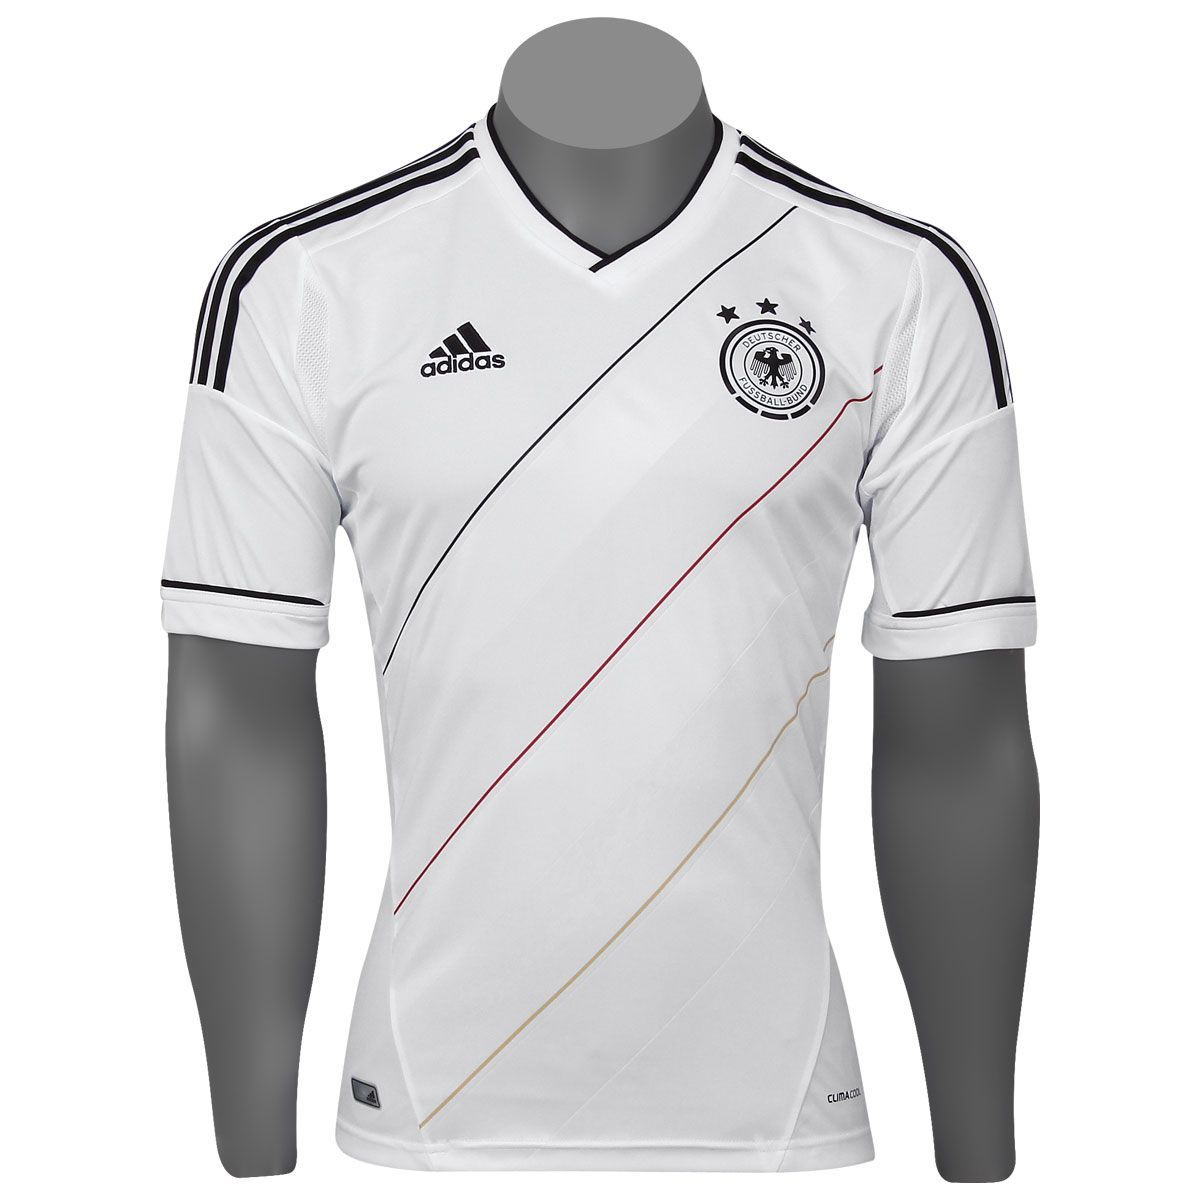 new germany soccer jersey Football Is Life 9642adcfbe3d0